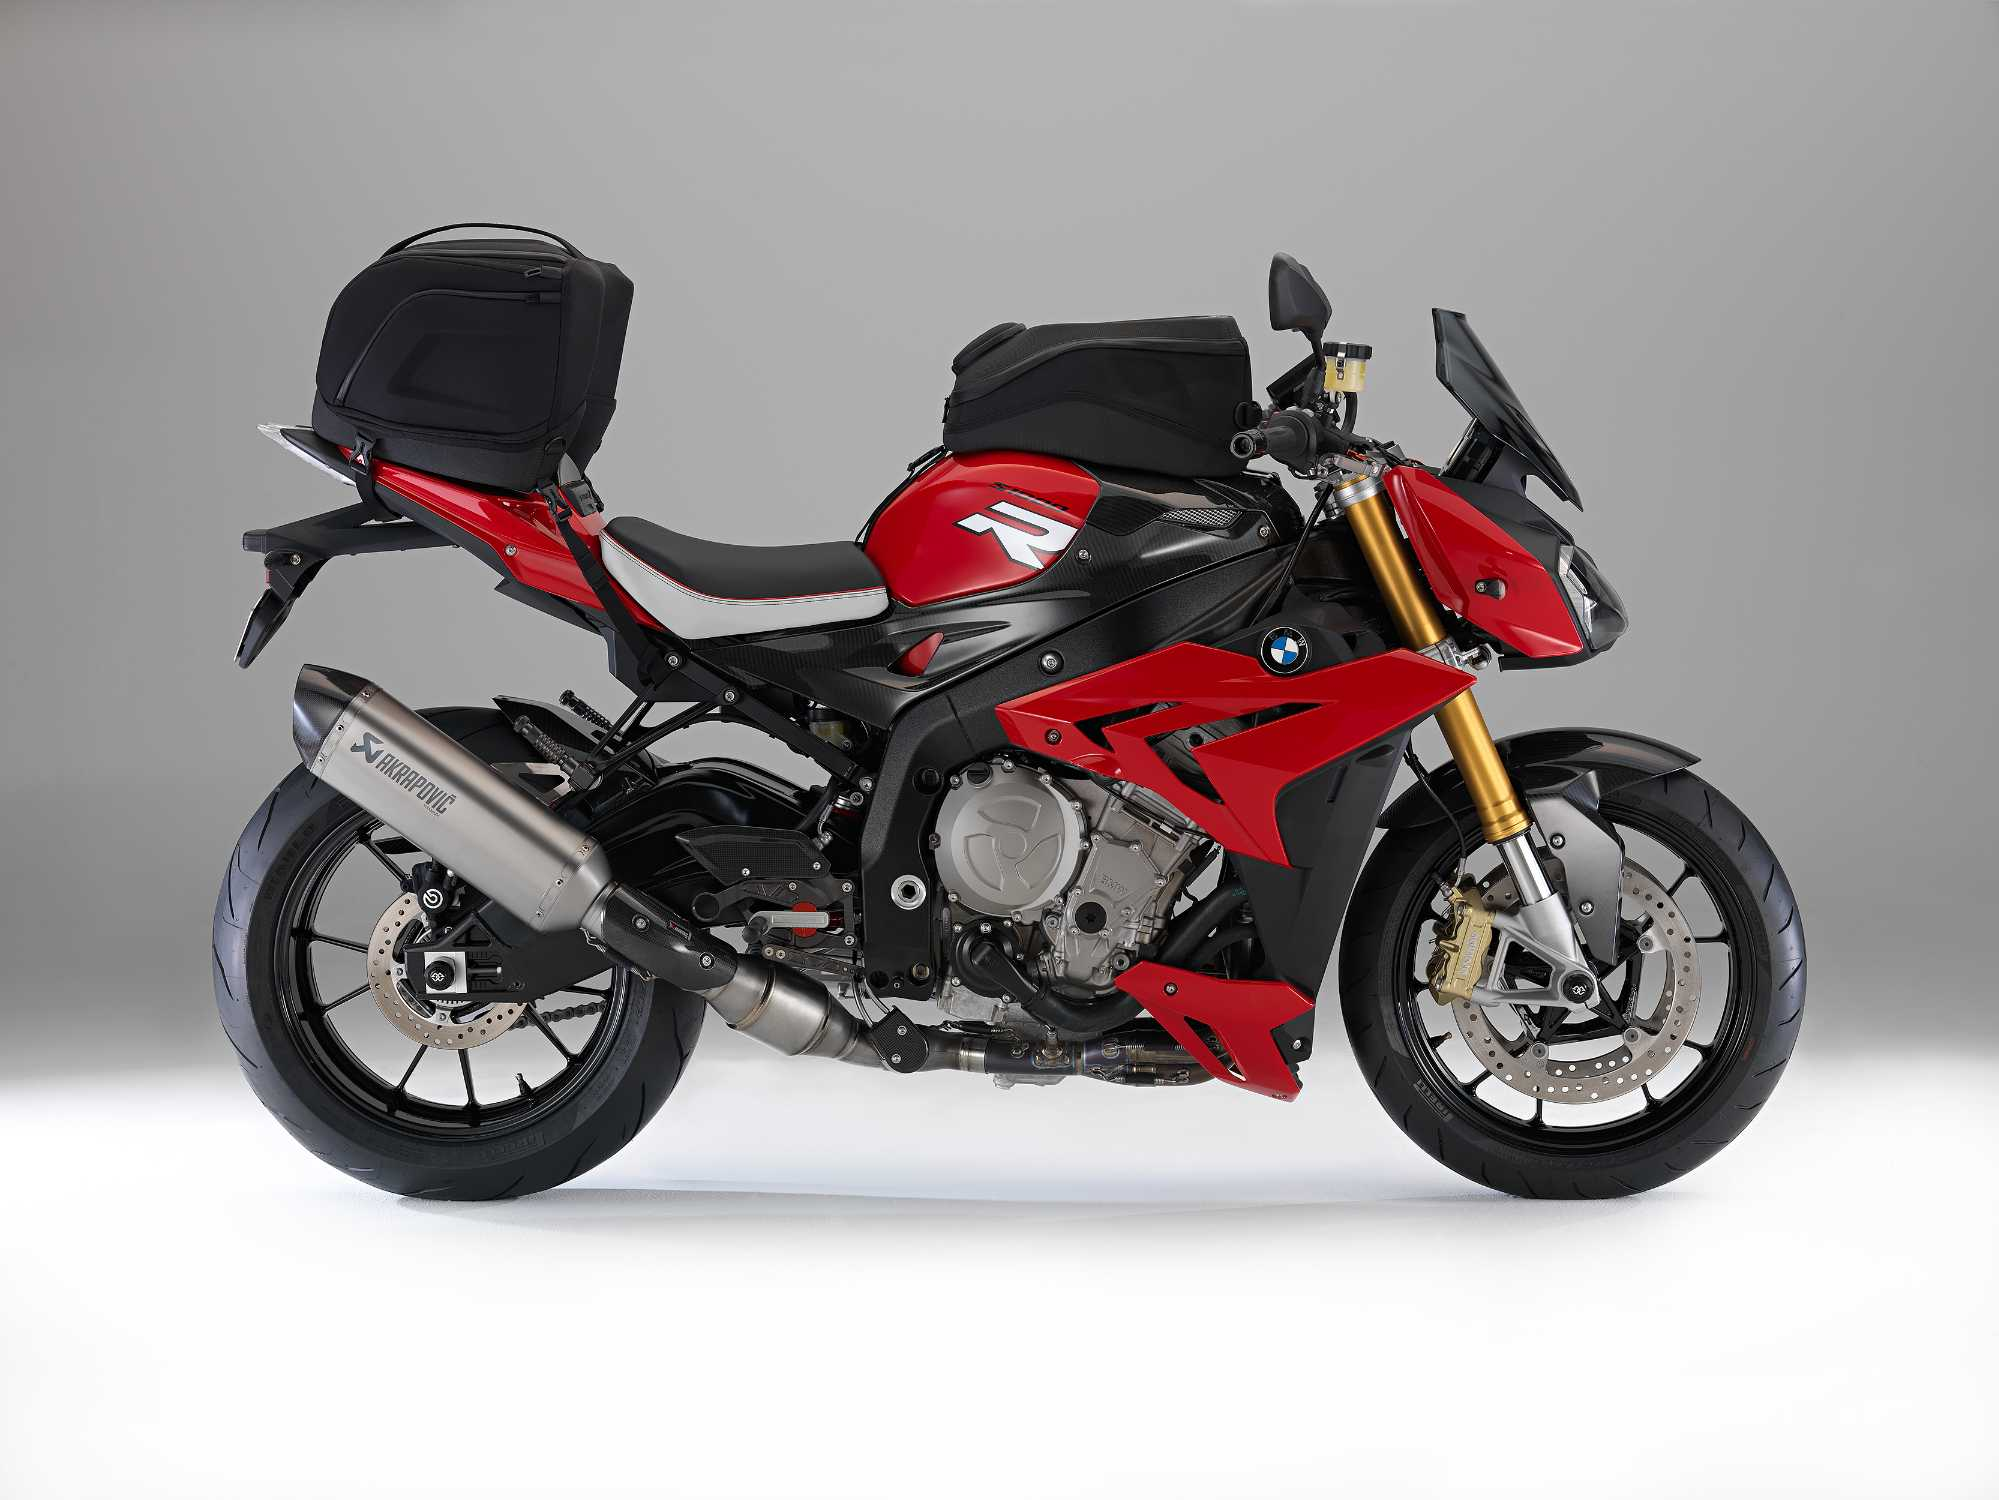 bmw s 1000 r mit sonderzubeh r hp carbon h ckerabdeckung. Black Bedroom Furniture Sets. Home Design Ideas